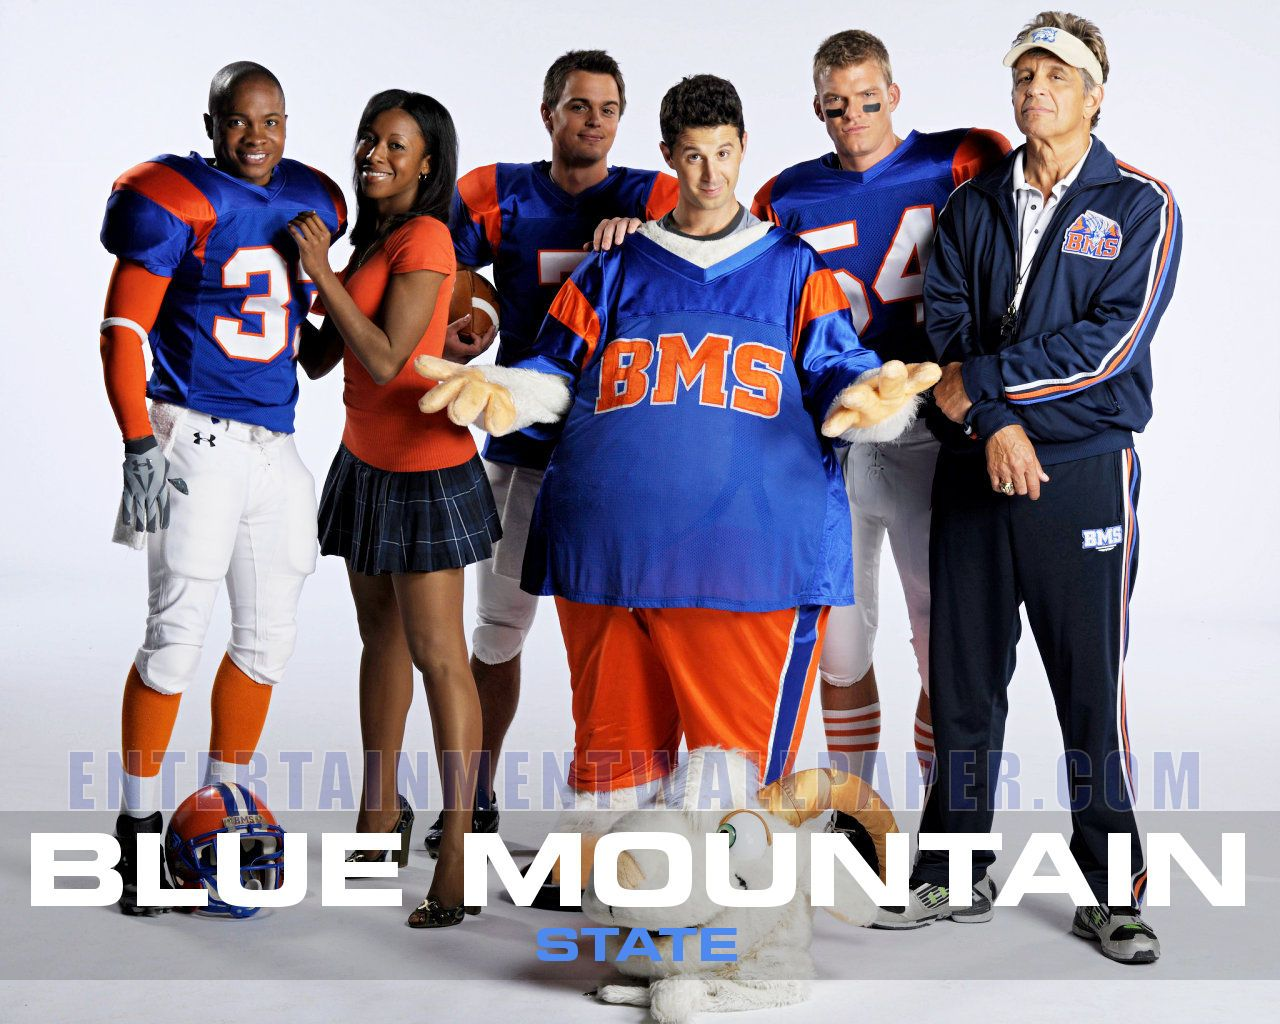 Blue Mountain State Baixar Filmes Download Filmes Our Version Of Events